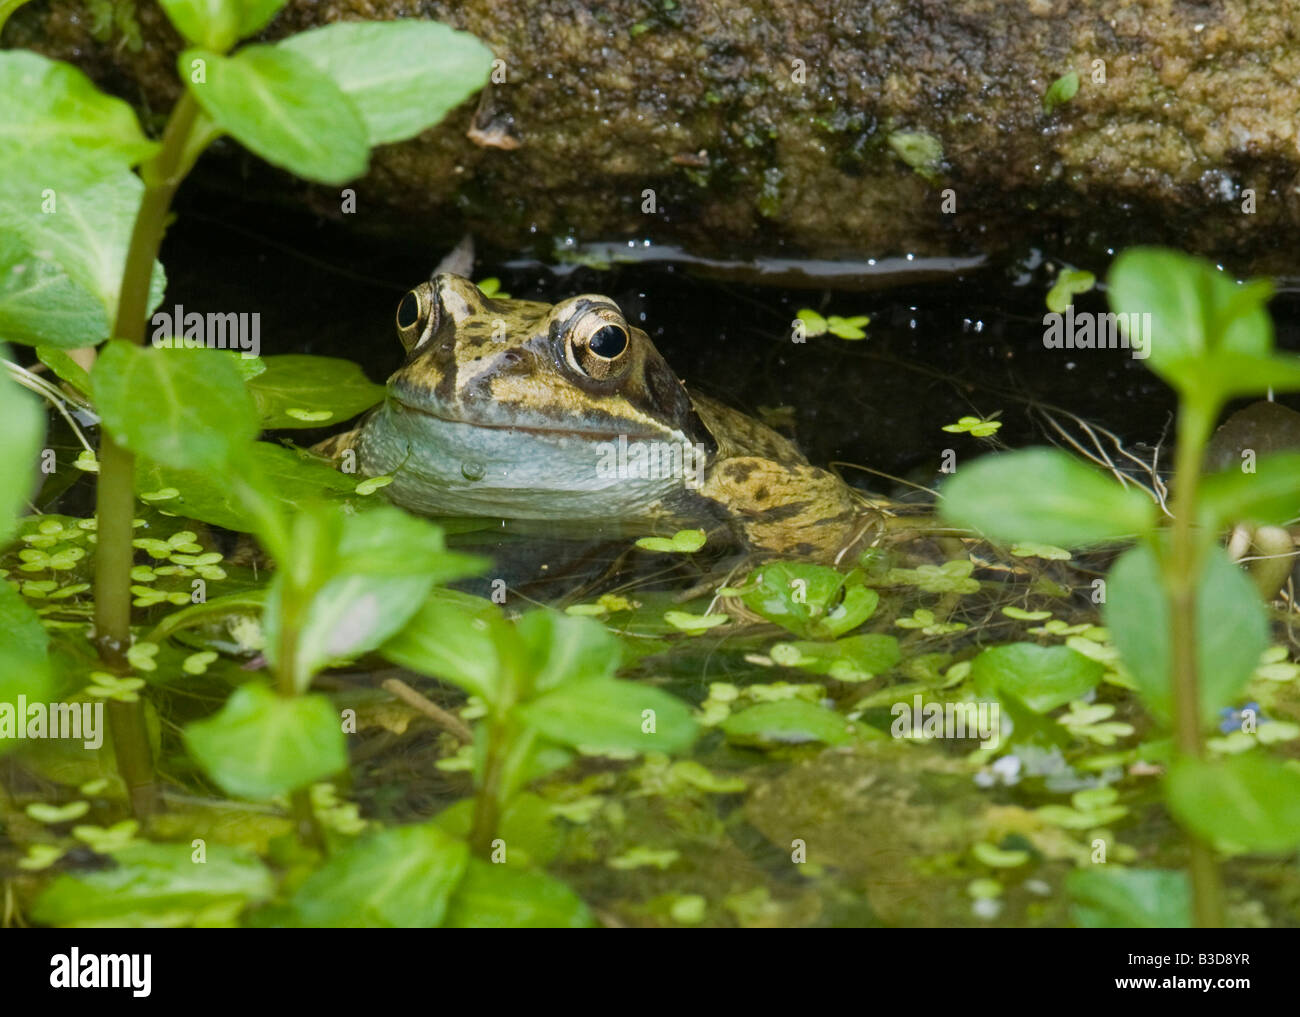 A male common frog Rana temporaria in a fresh water wildlife pond - Stock Image